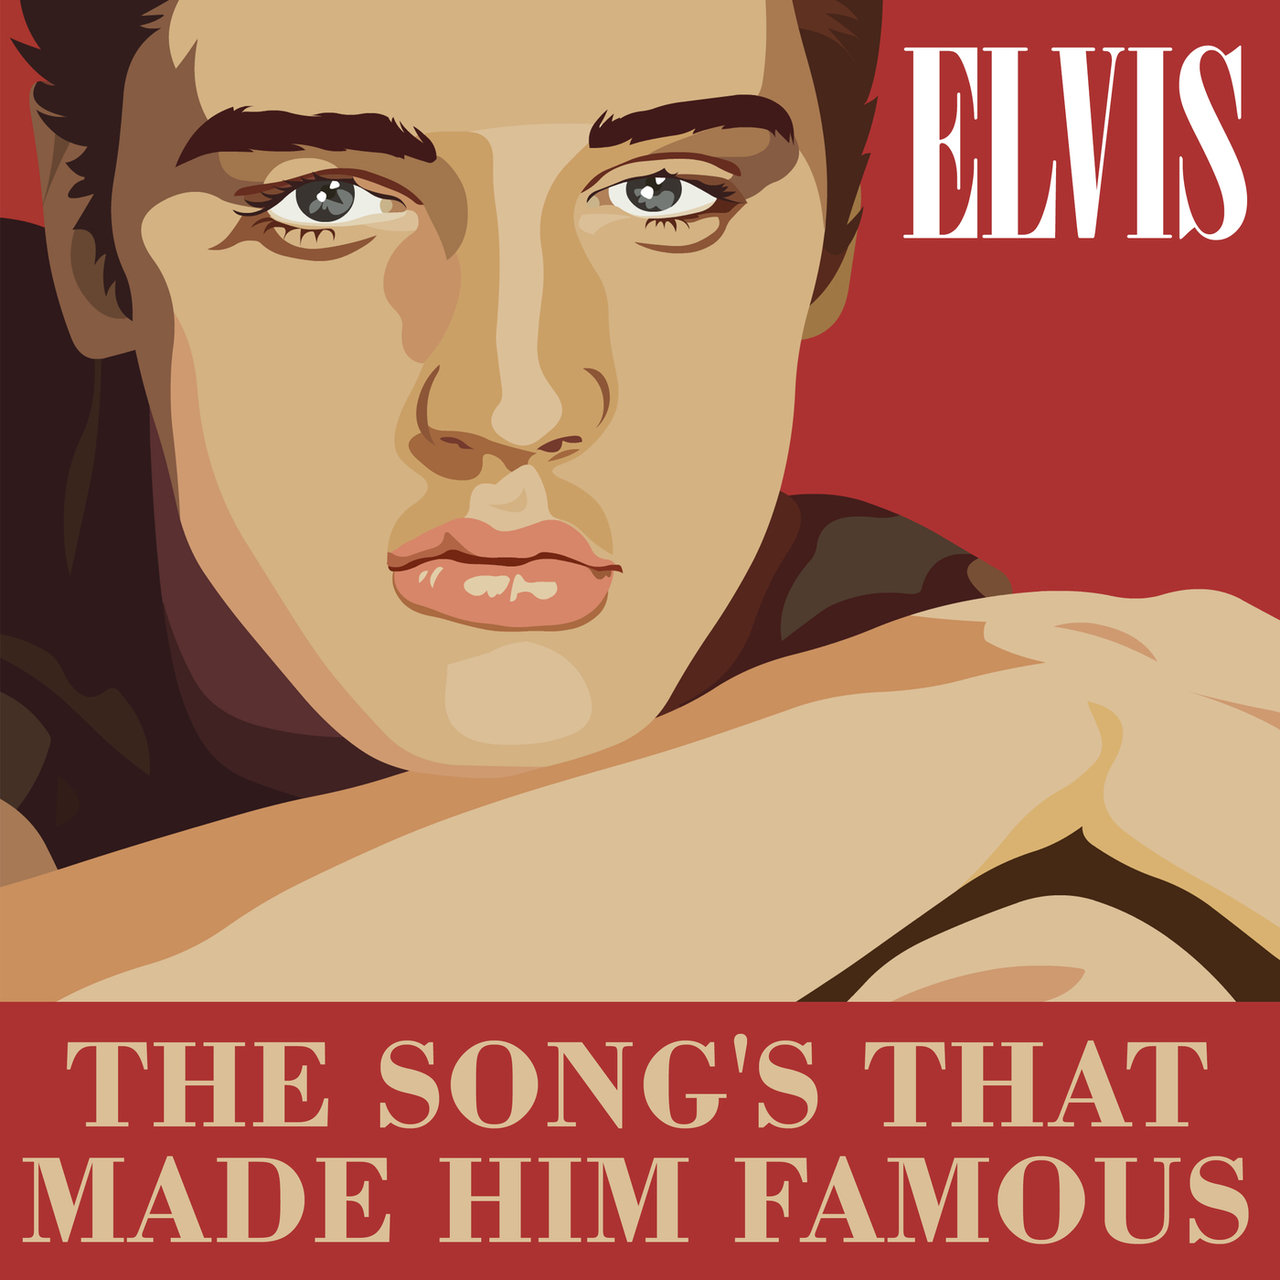 Elvis - The Song's That Made Him Famous